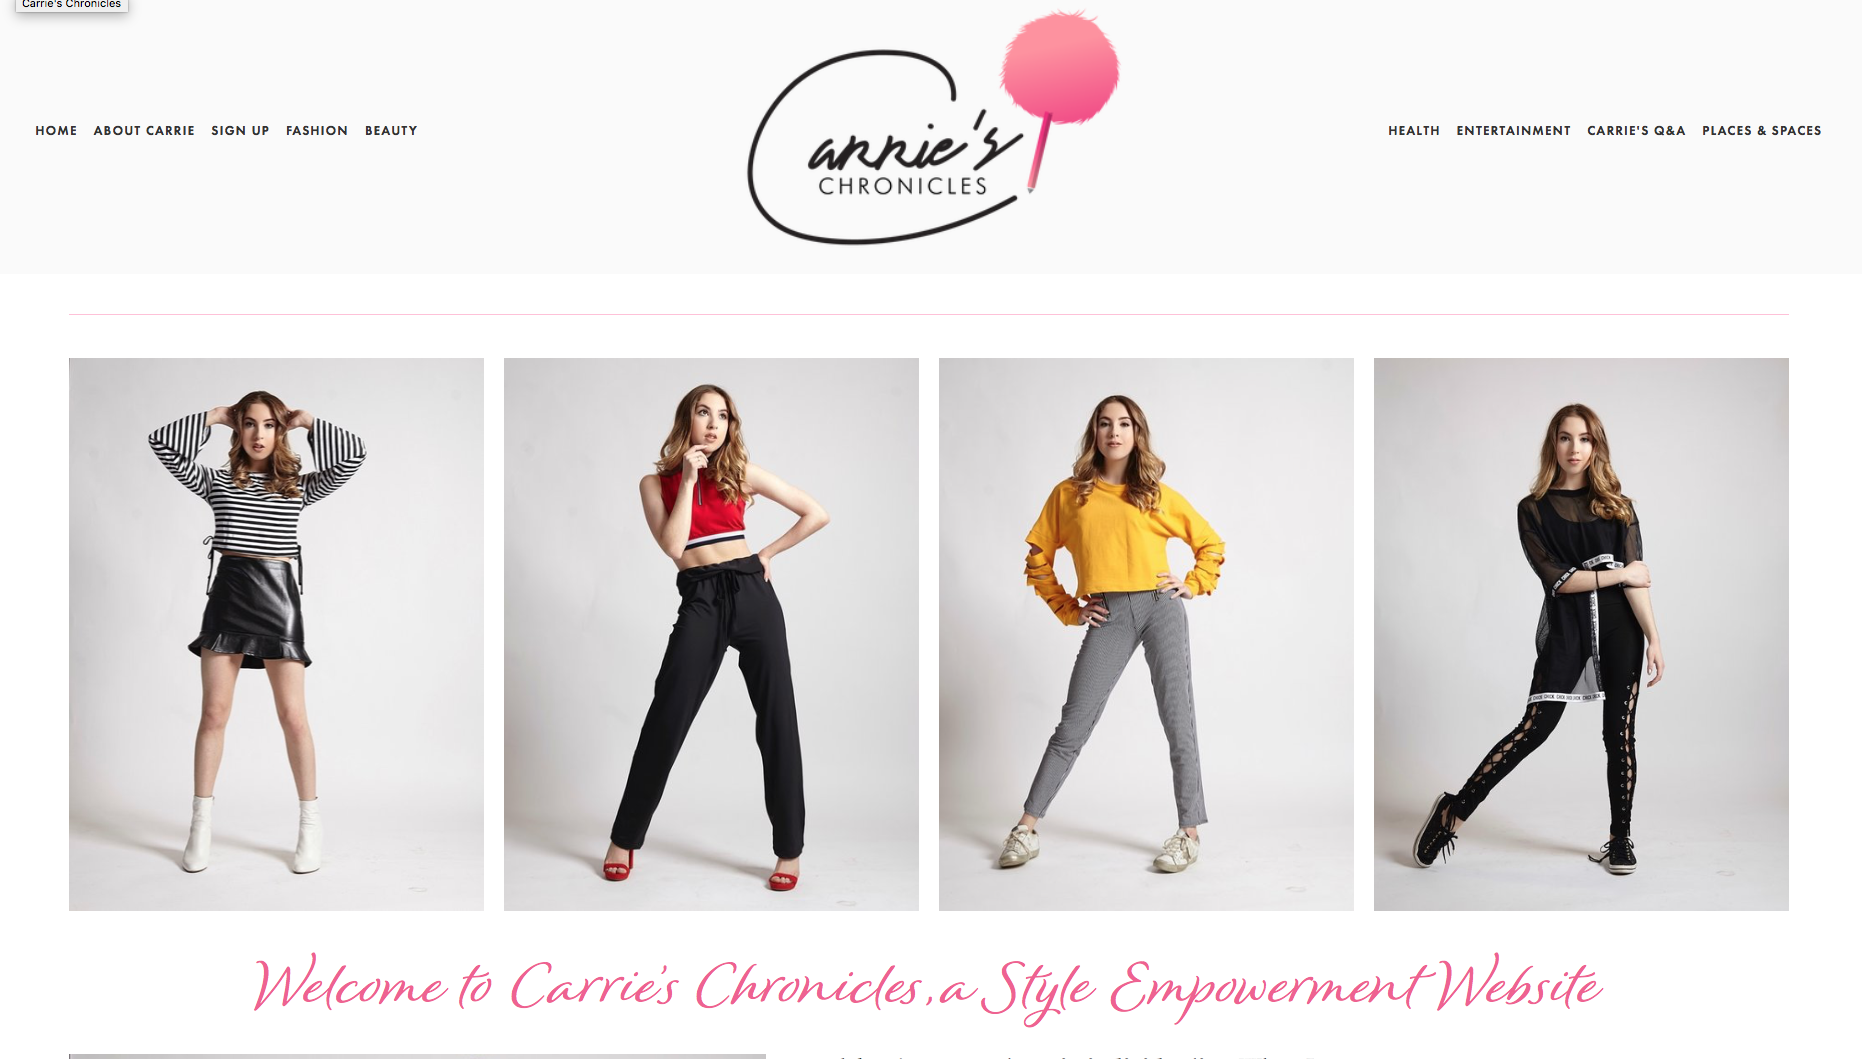 Carrie's Chronicles: A Style Empowerment Site image